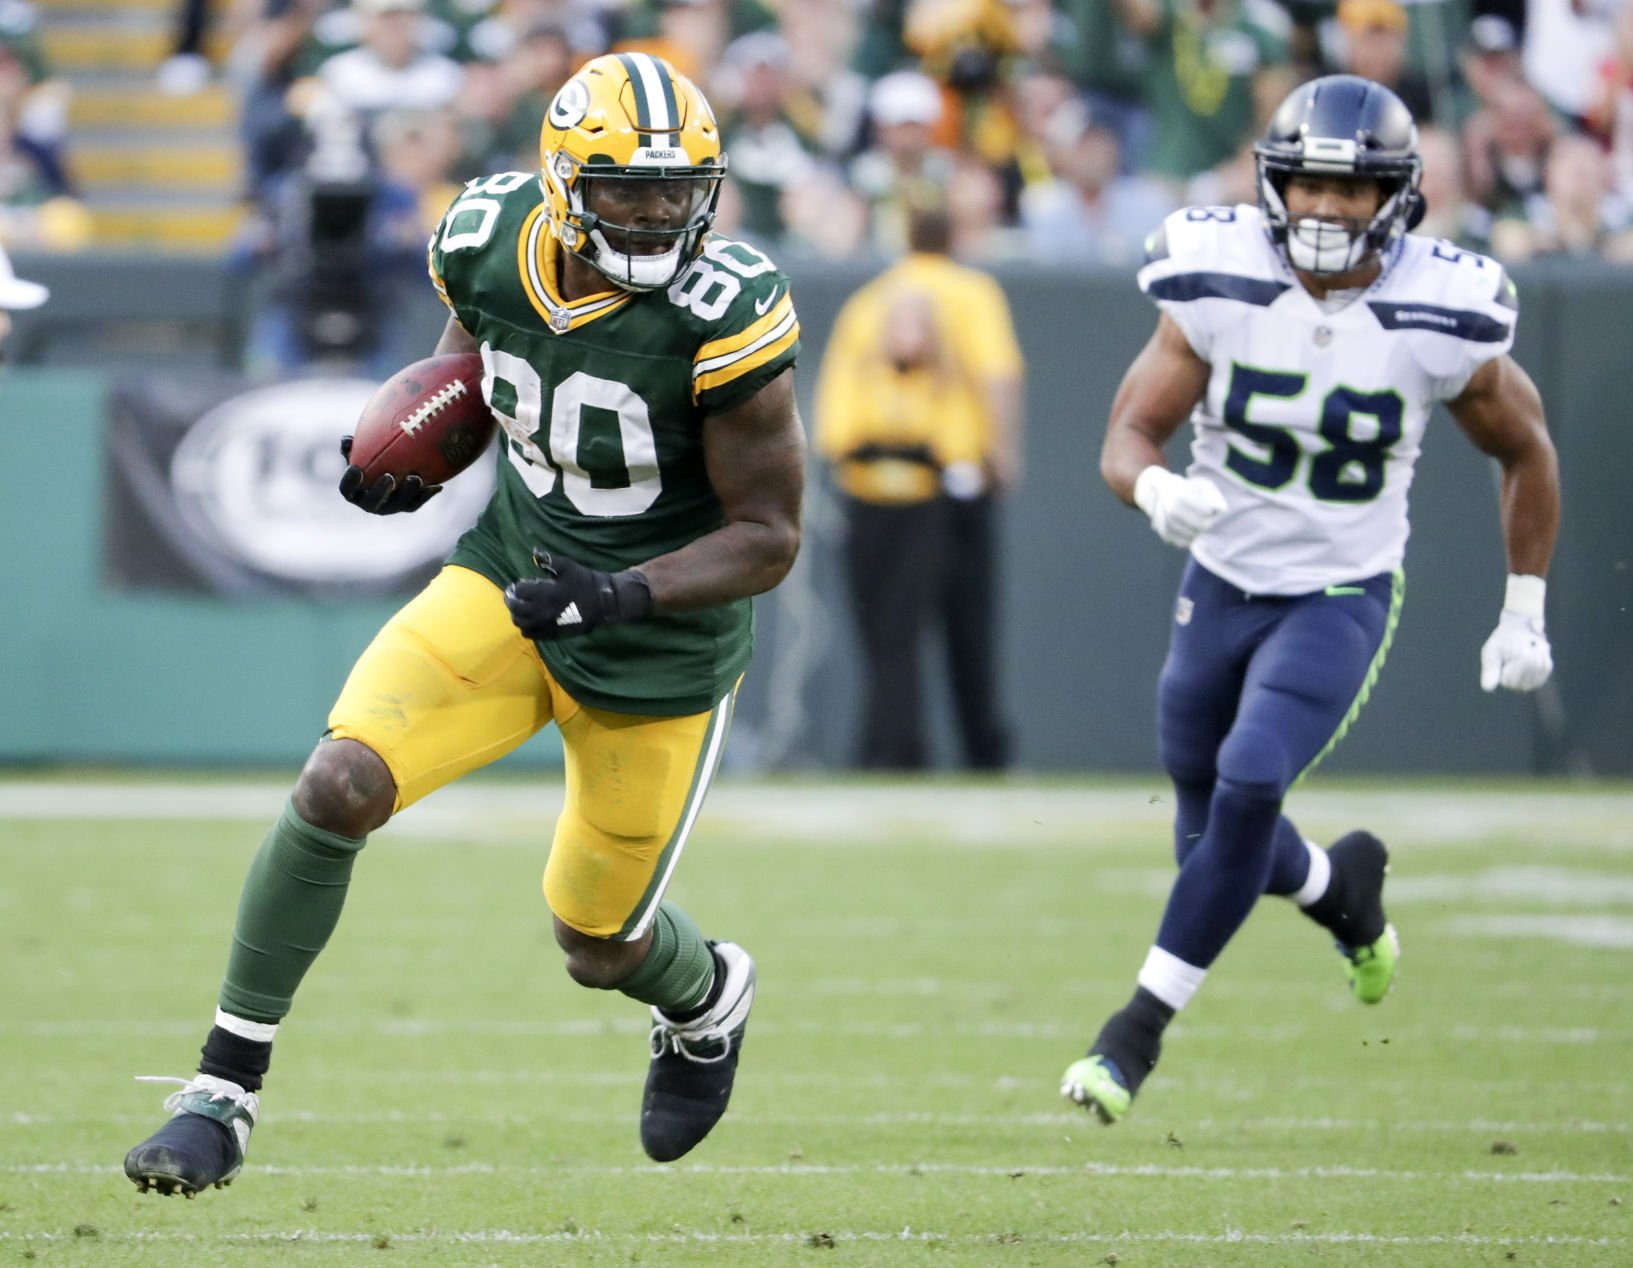 Short work: Aaron Rodgers, Jordy Nelson cashing in on red zone chances